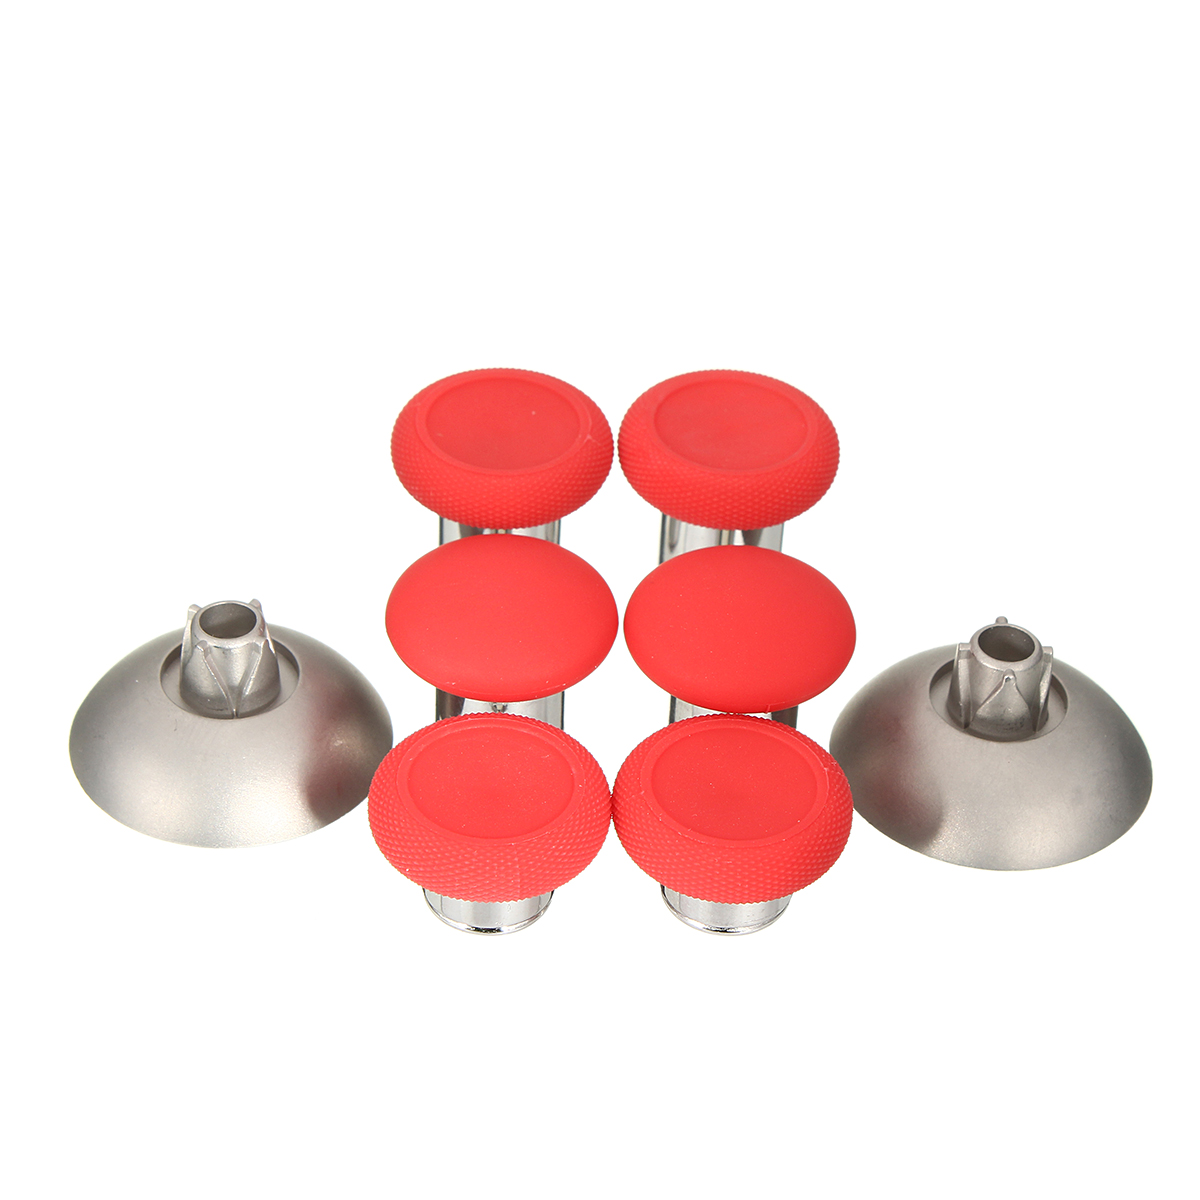 Buy Red Elite Swap Thumbstick Analog Grips (8pcs) for PS4&Xbox One Controllers